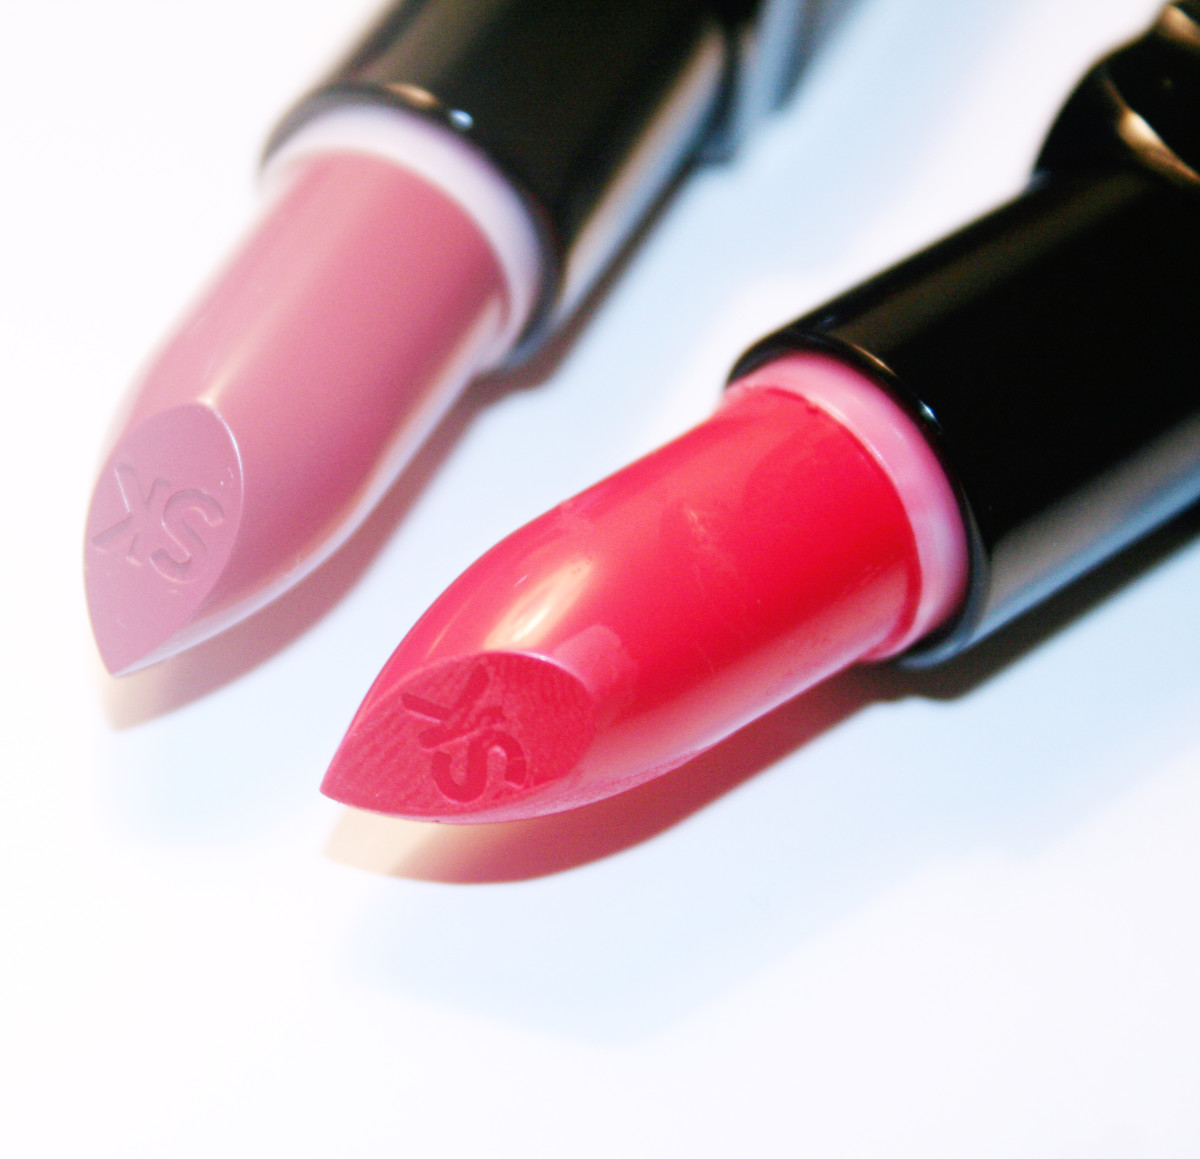 Sonia Kashuk Satin Luxe Lip Color